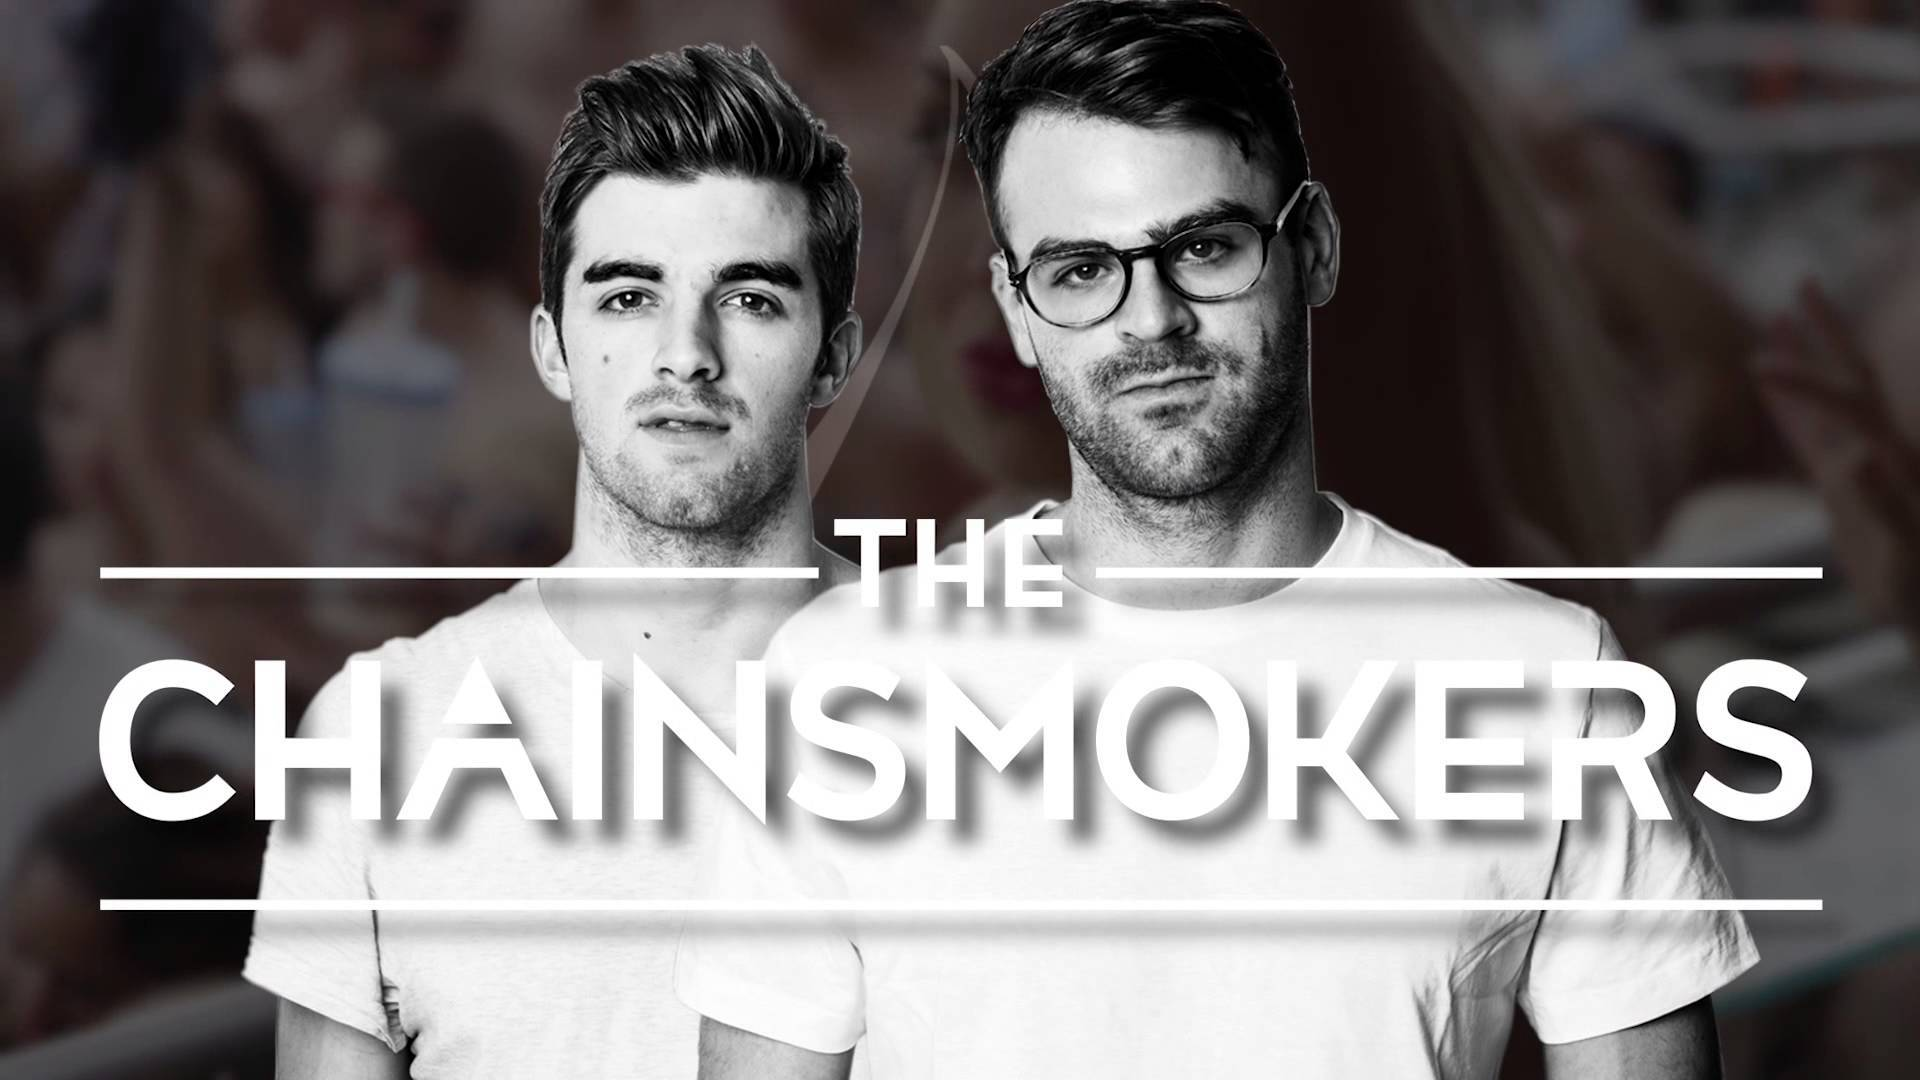 The Chainsmokers Wallpapers Images Photos Pictures Backgrounds 1920x1080